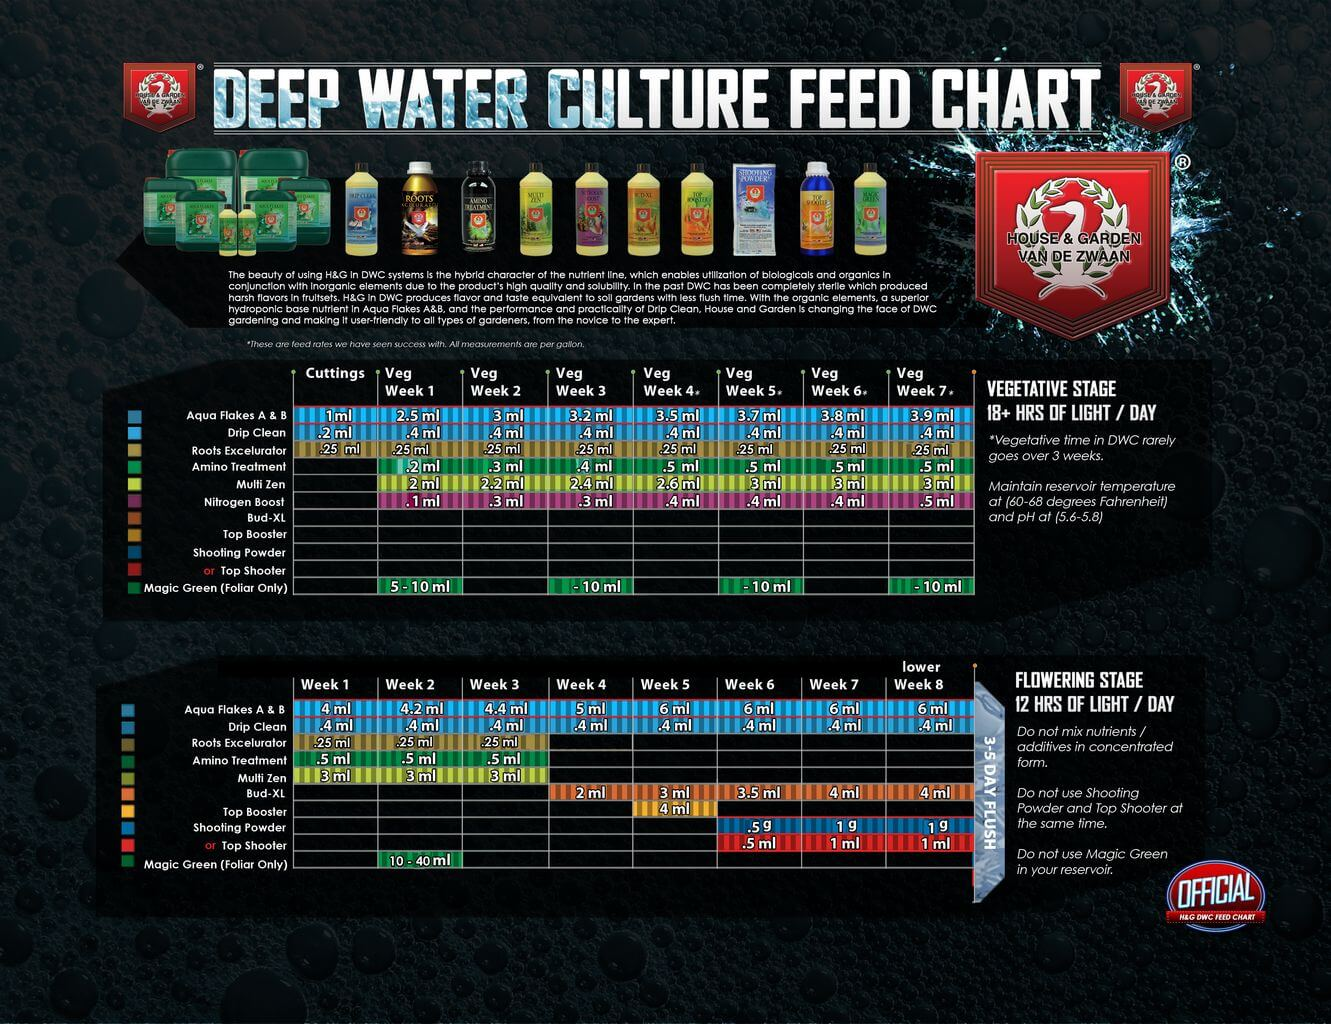 house and garden feed chart - 8